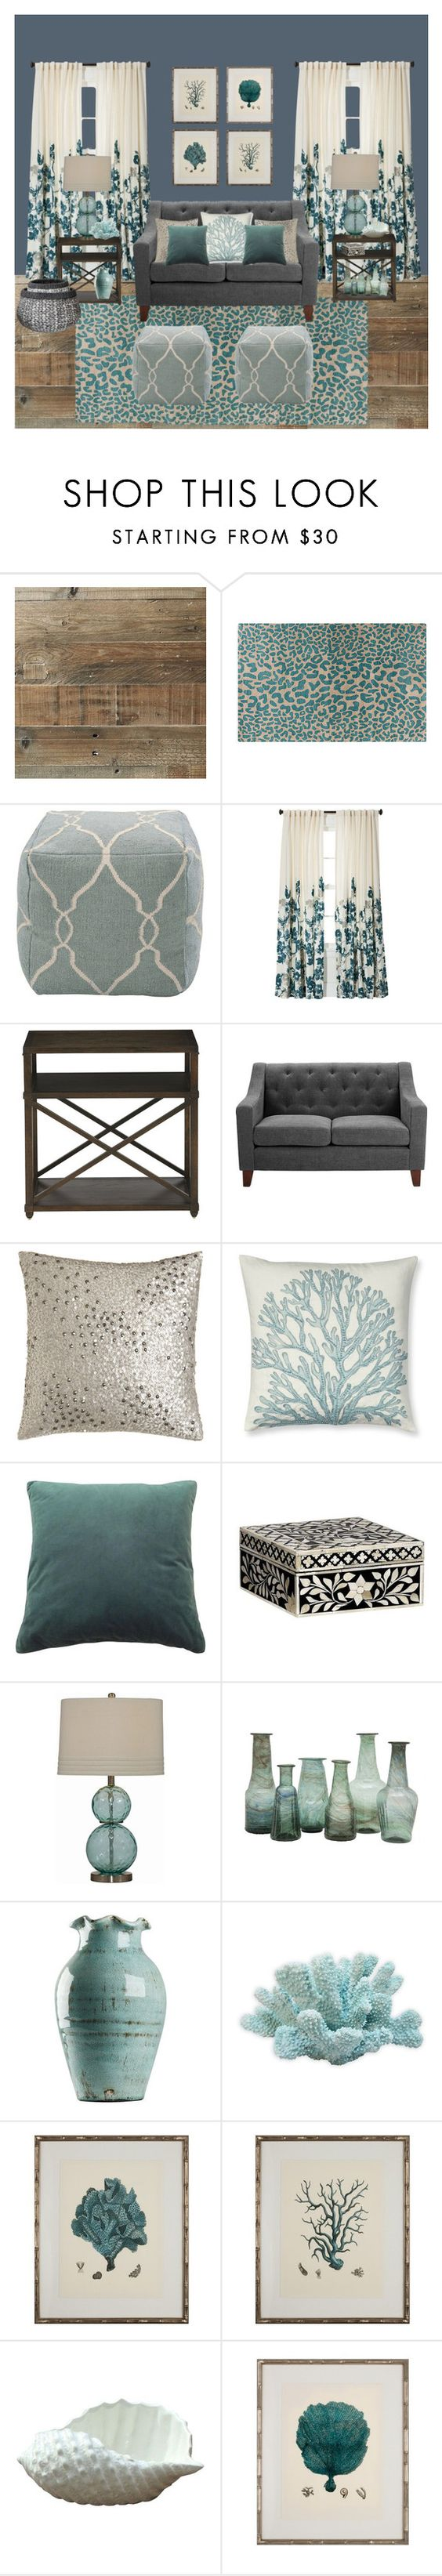 Threshold home decor shop for threshold home decor on polyvore -  Beach House Living Room By Tinky3buggs Liked On Polyvore Featuring Interior Interiors Interior Design Home Home Decor Interior Decorating